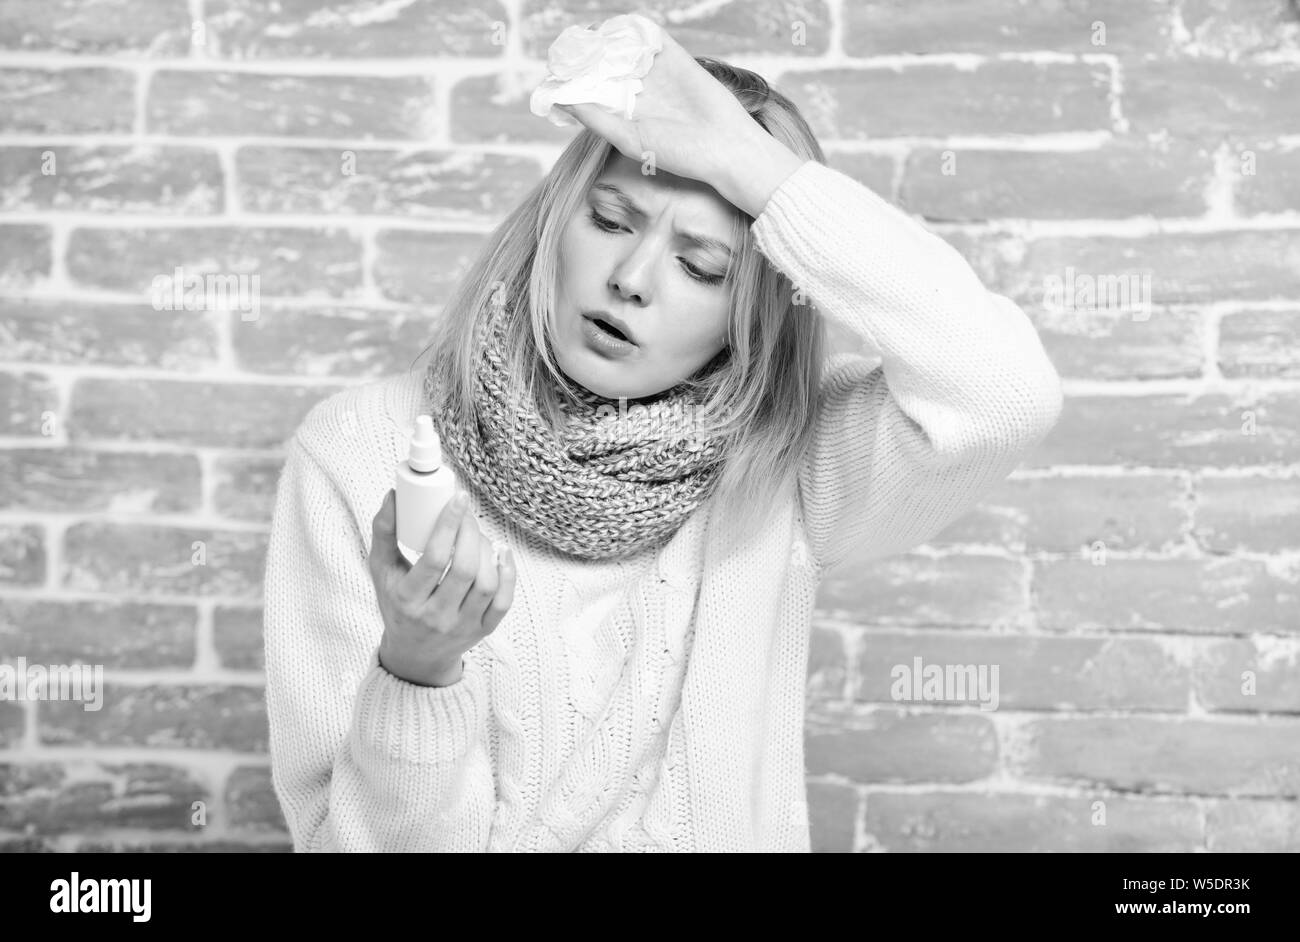 Headache attack. Sick woman injecting drops into nose. Pretty girl with runny nose holding nasal drops. Suffering from asthma or allergic rhinitis. Cute woman nursing nasal cold or allergy. Stock Photo